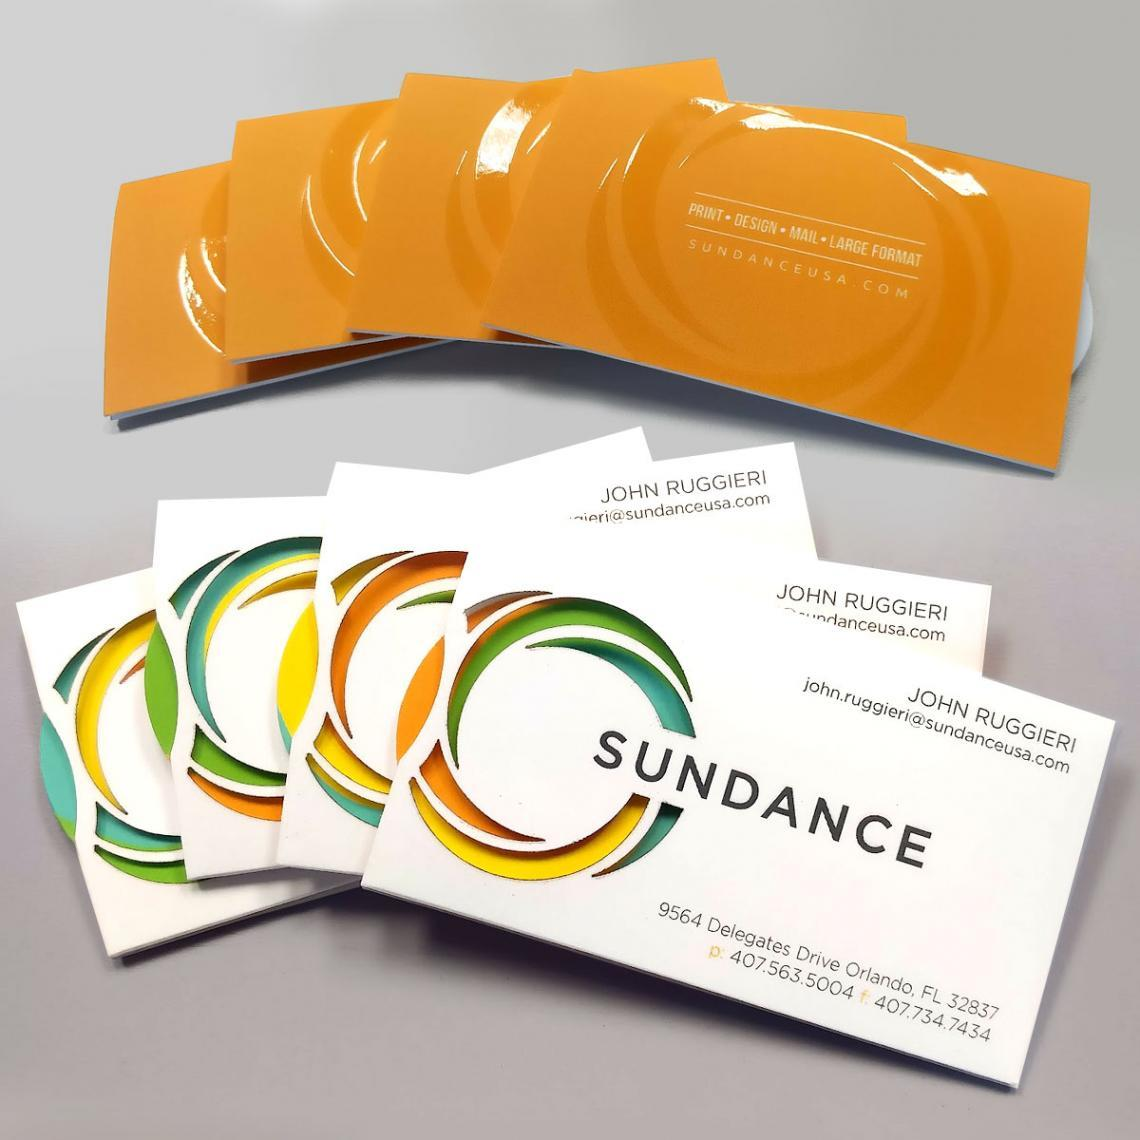 Video - SunDance's Spinning Business Card on 60 Second Fold